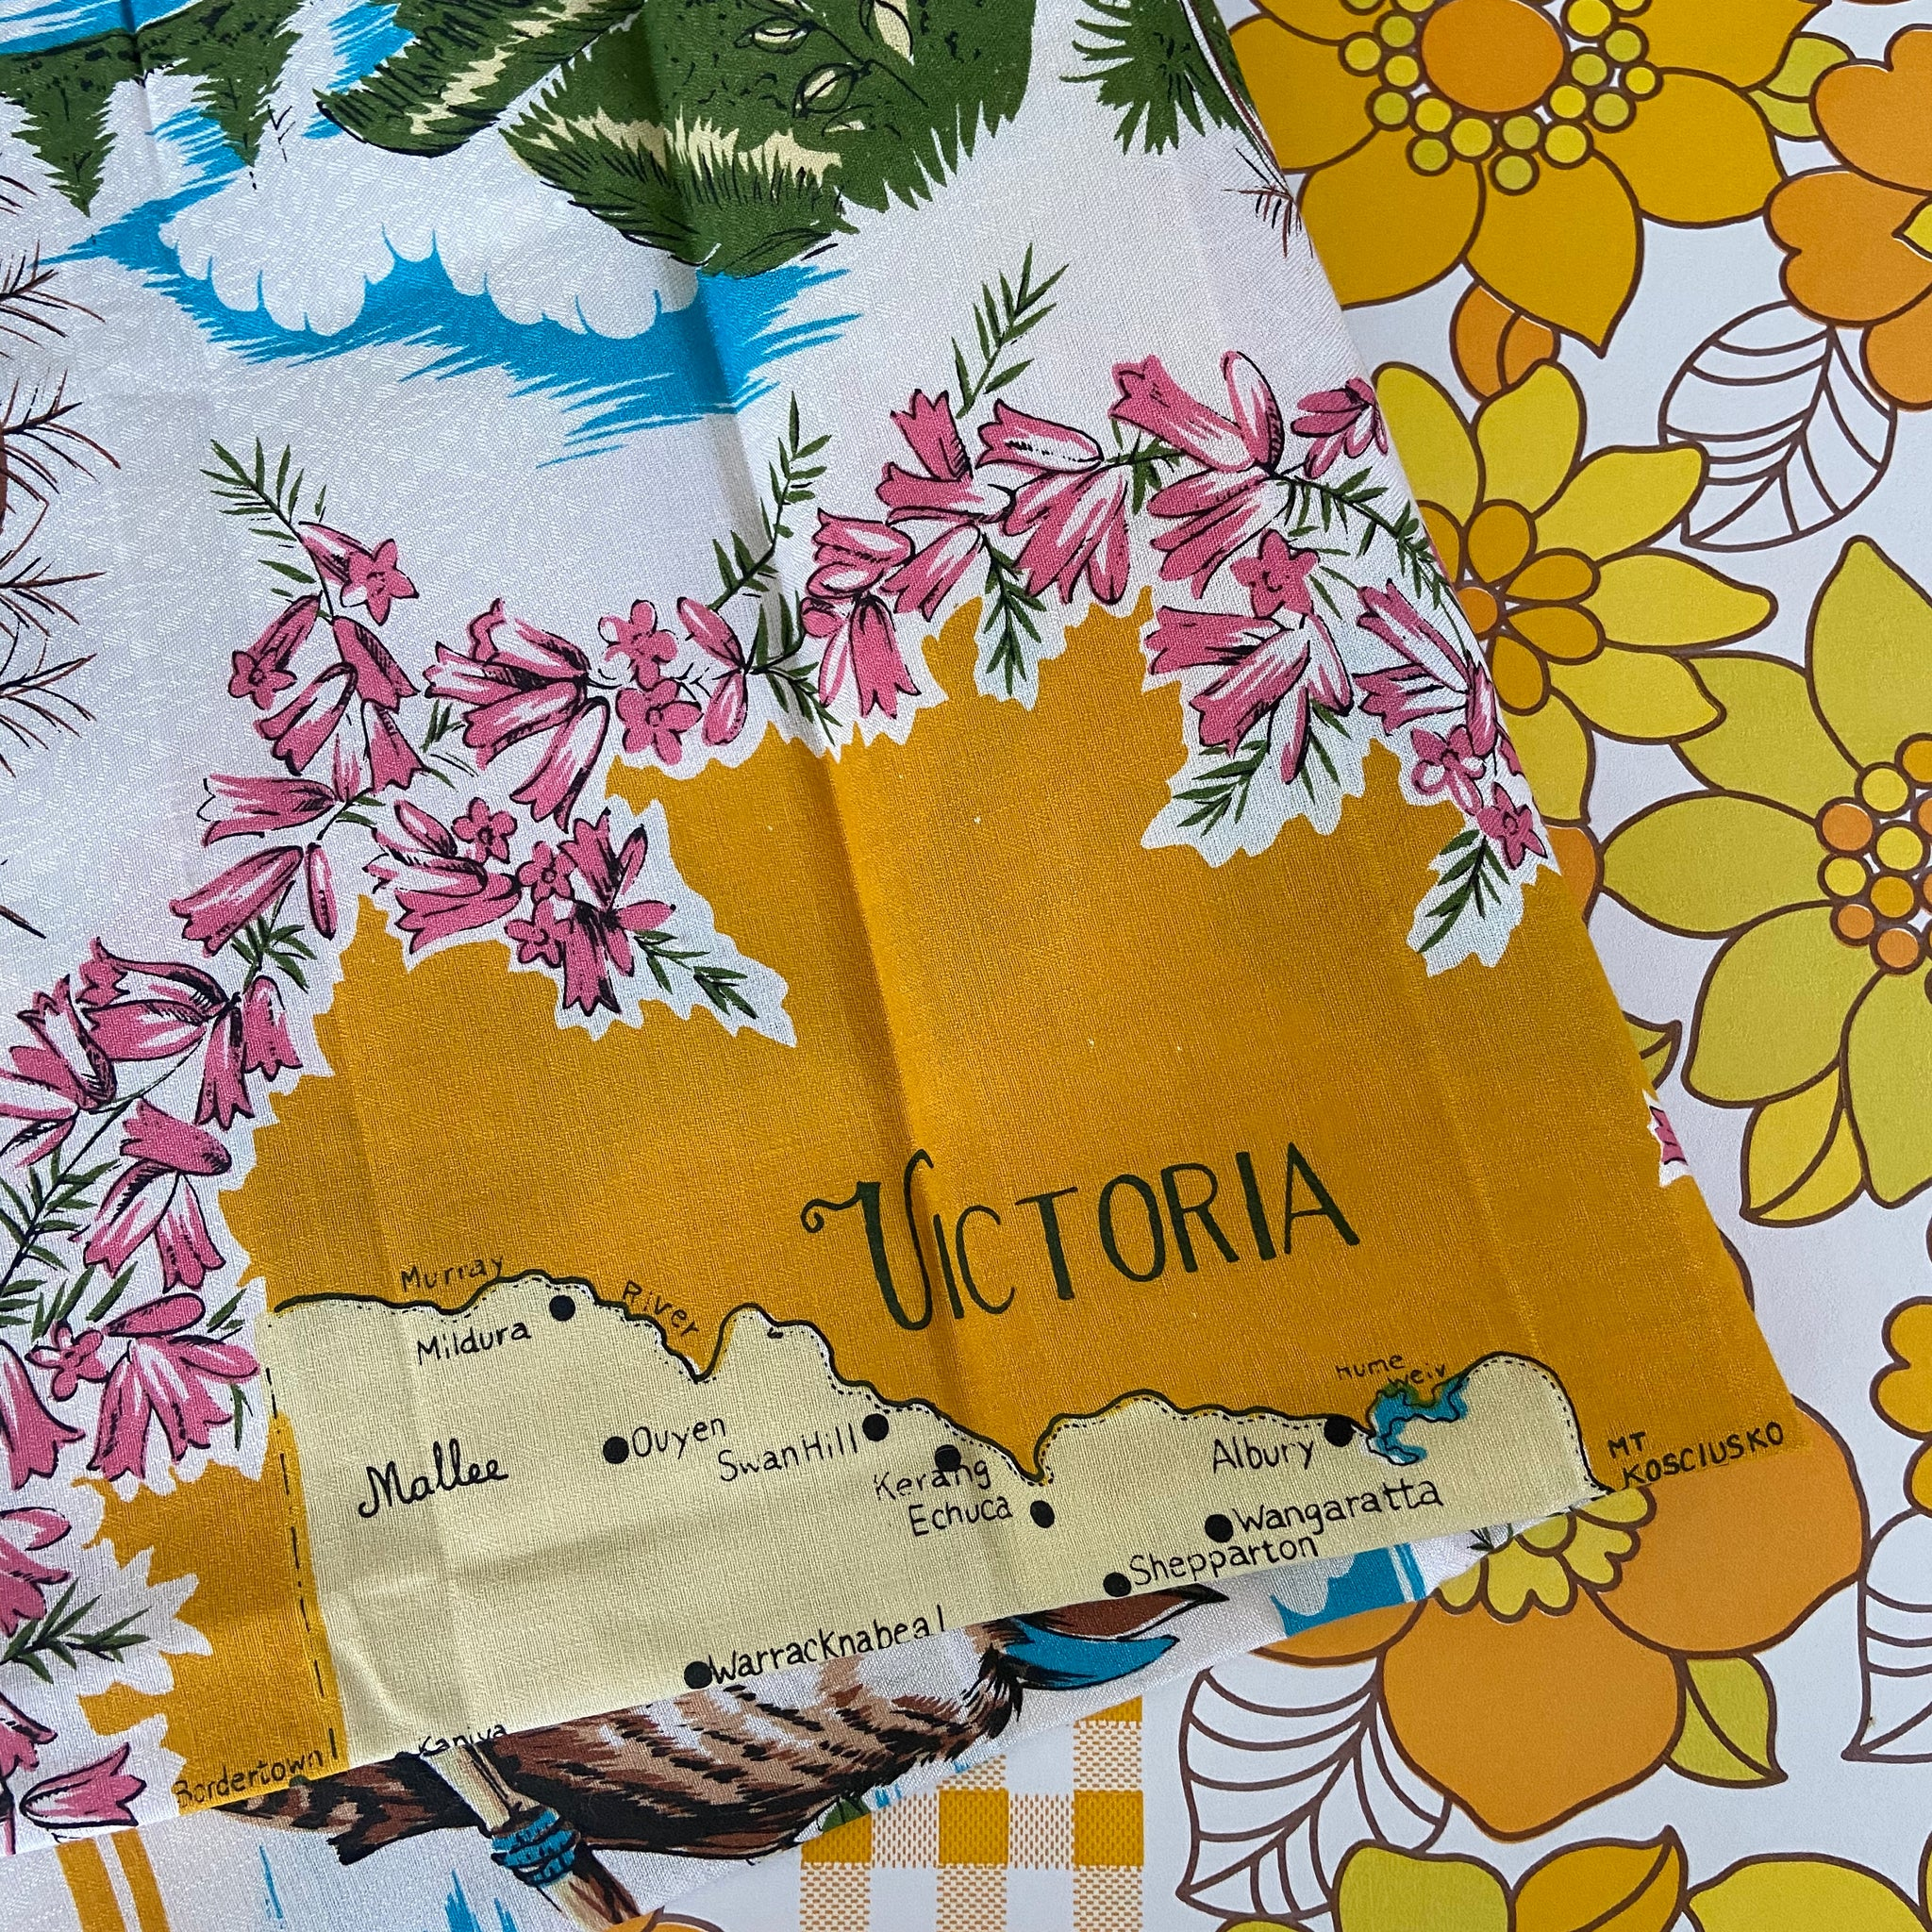 VICTORIA Caravan Souvenir RETRO HOME Linen Tablecloth